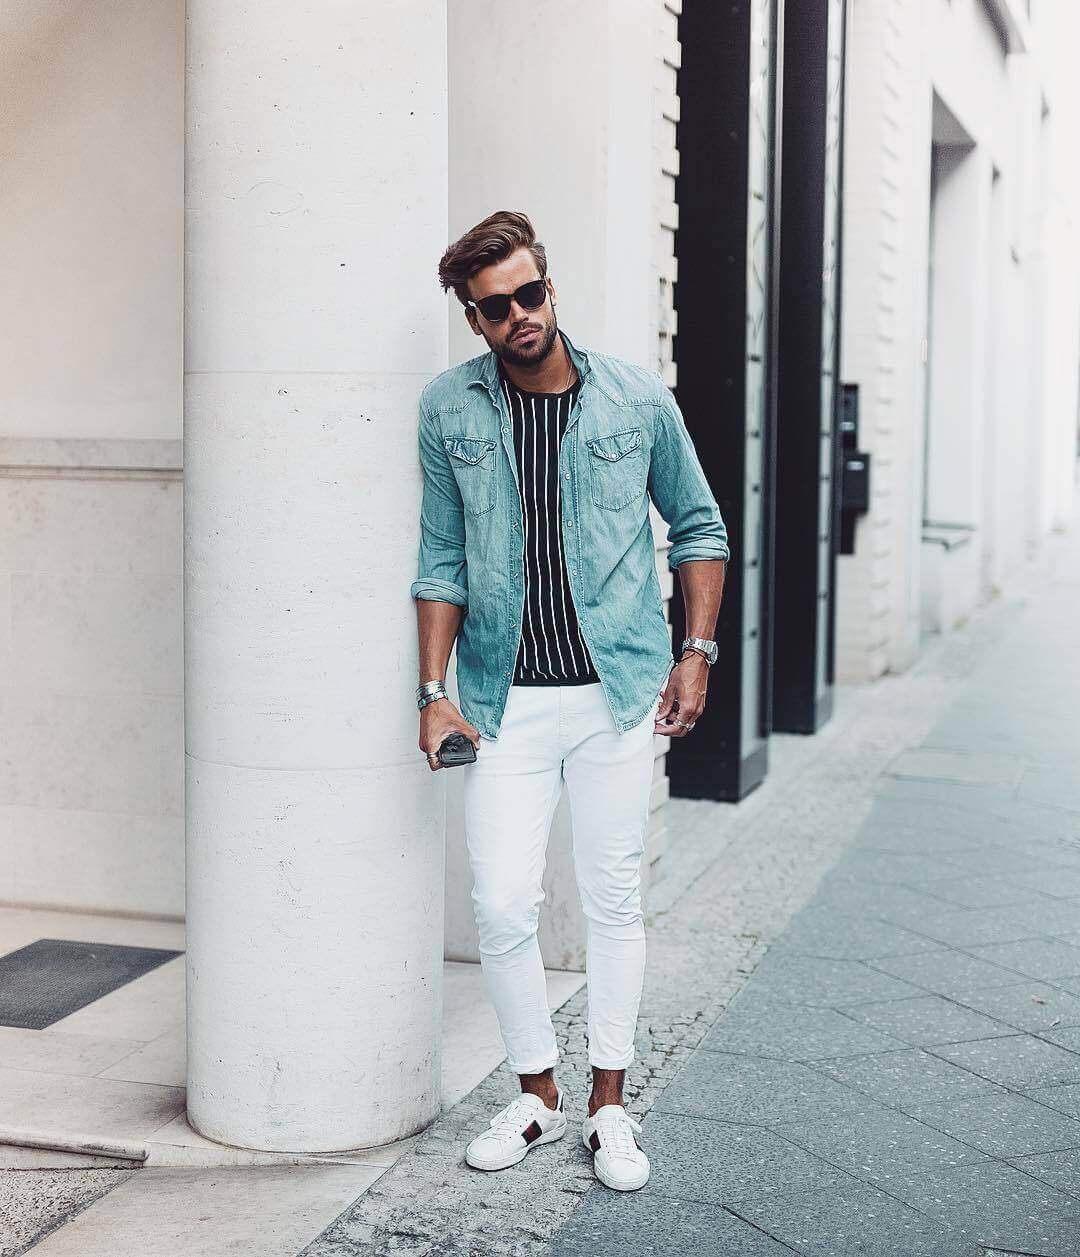 These different men's fashion styles are perfect to act as a lookbook for those who have a hard time figuring what to wear according to the best style for them.